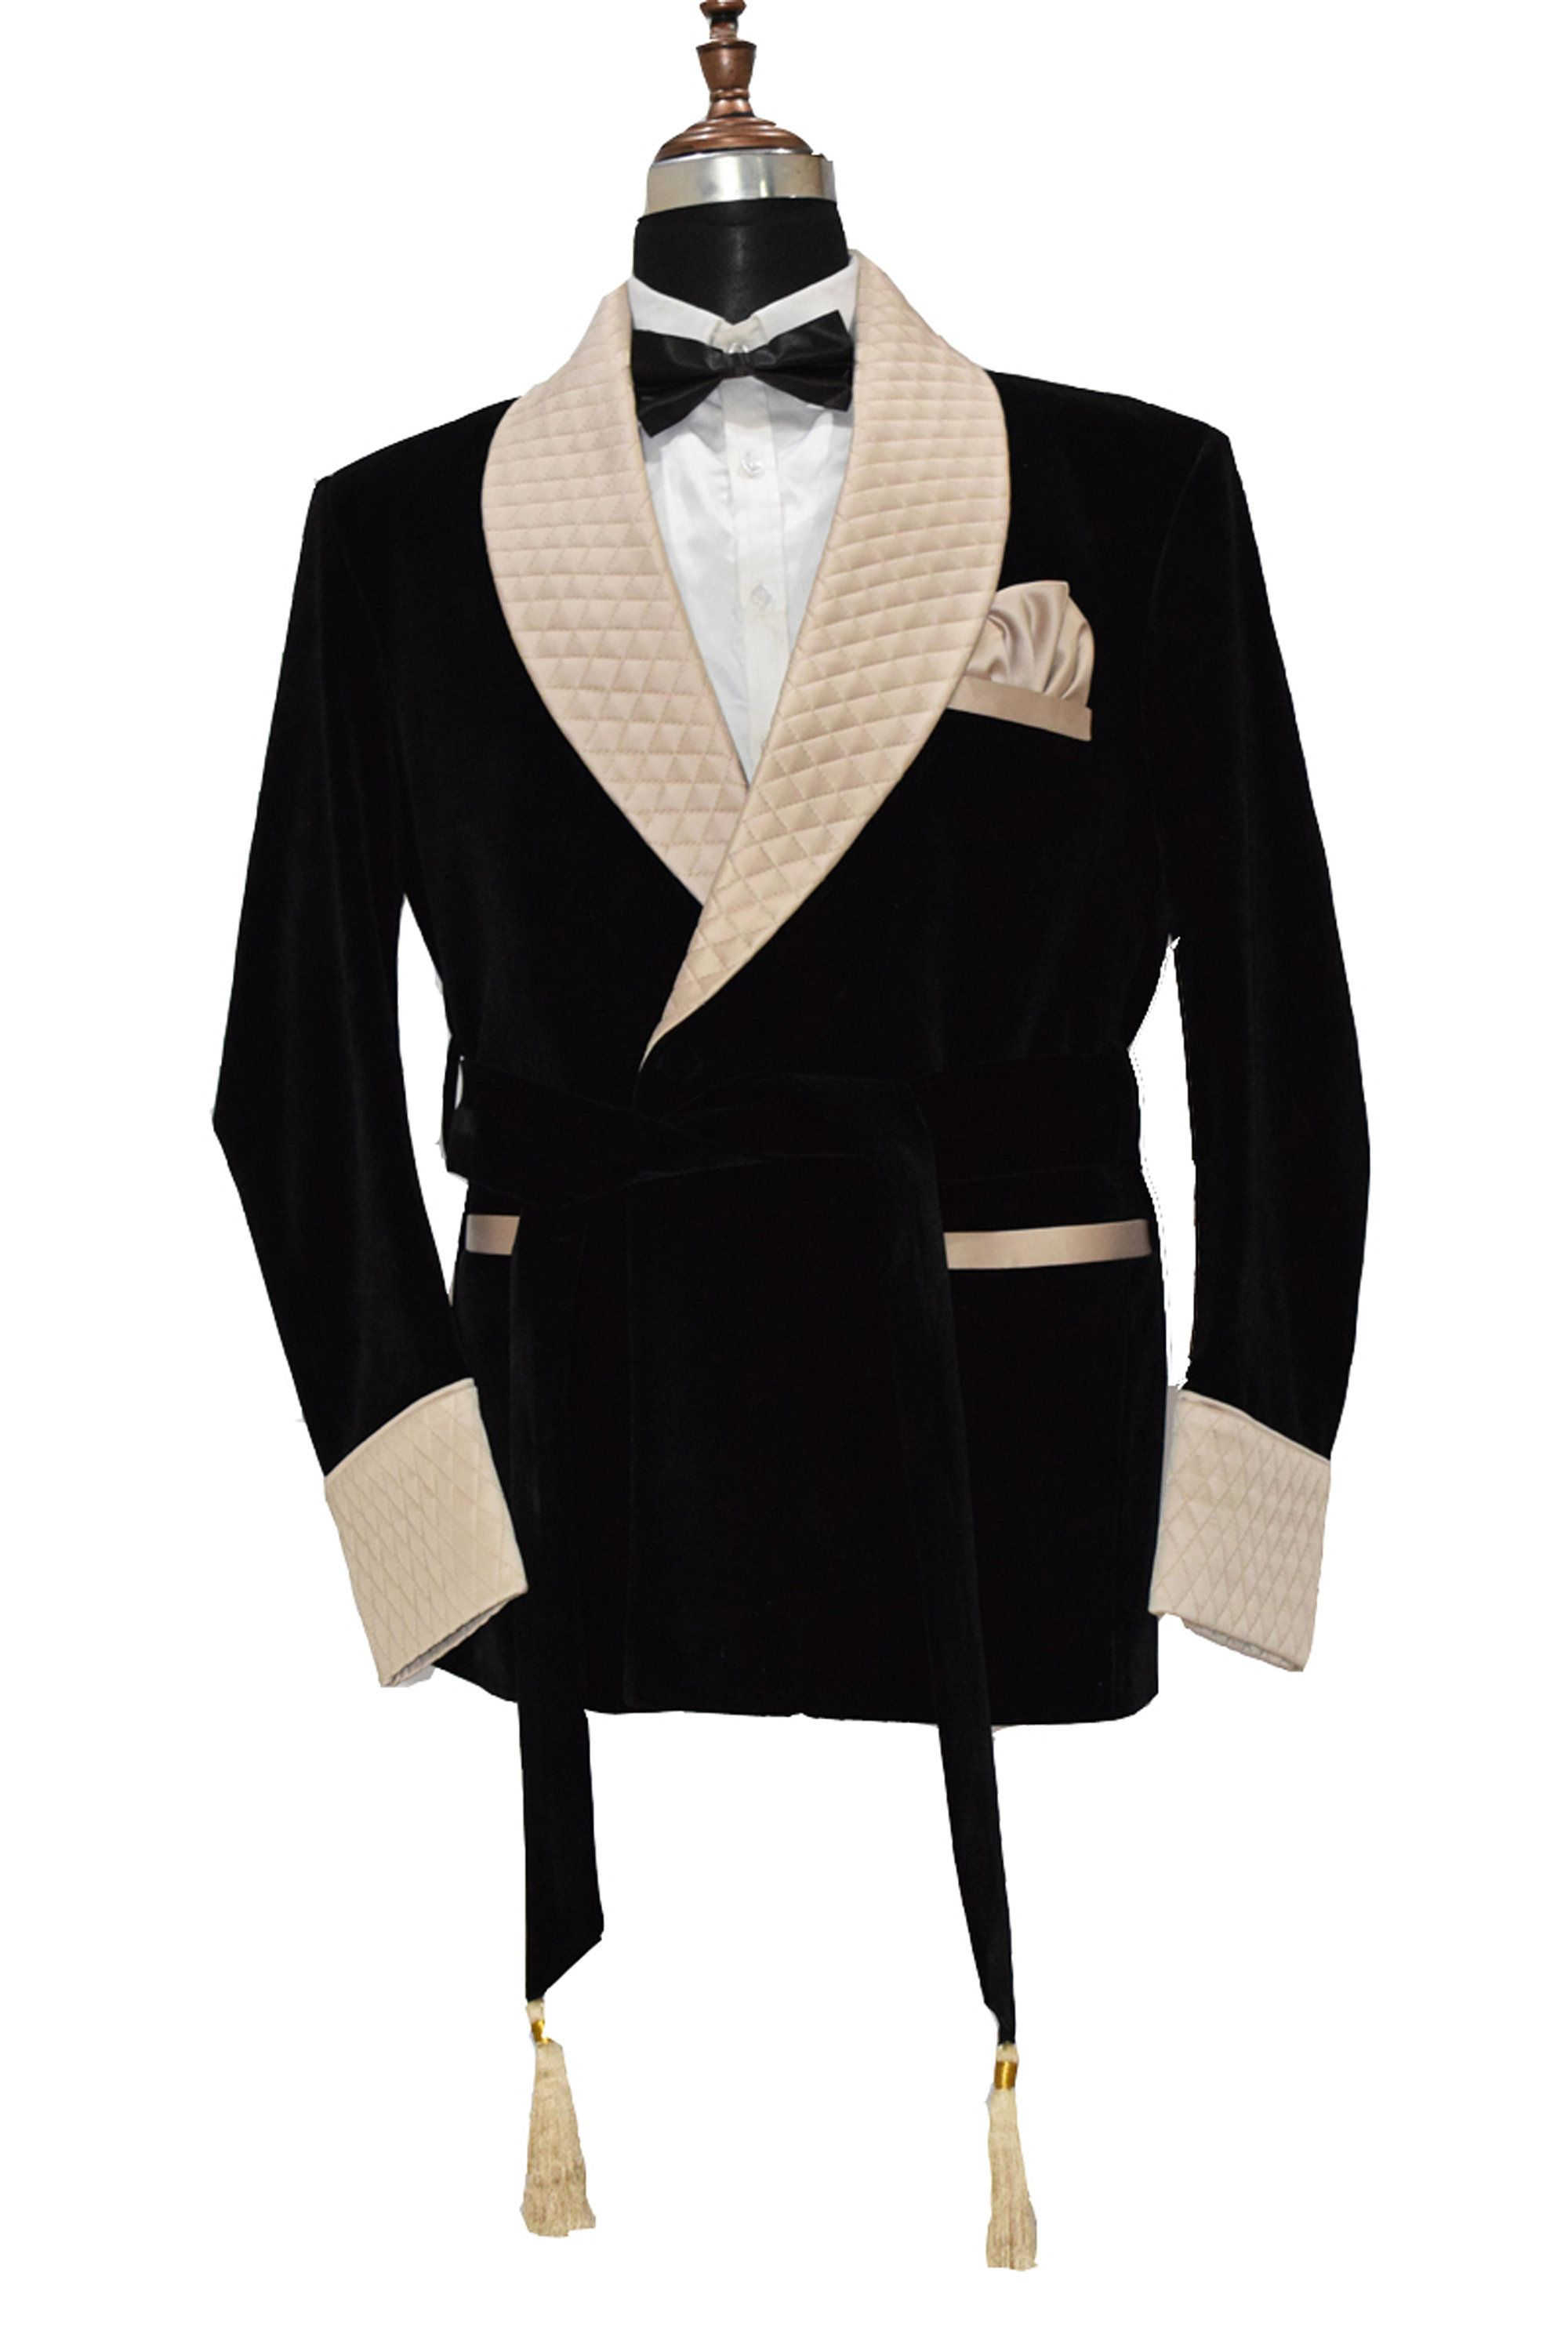 Image result for Men Black Smoking Jackets Designer Wedding Belted Party Wear Coats